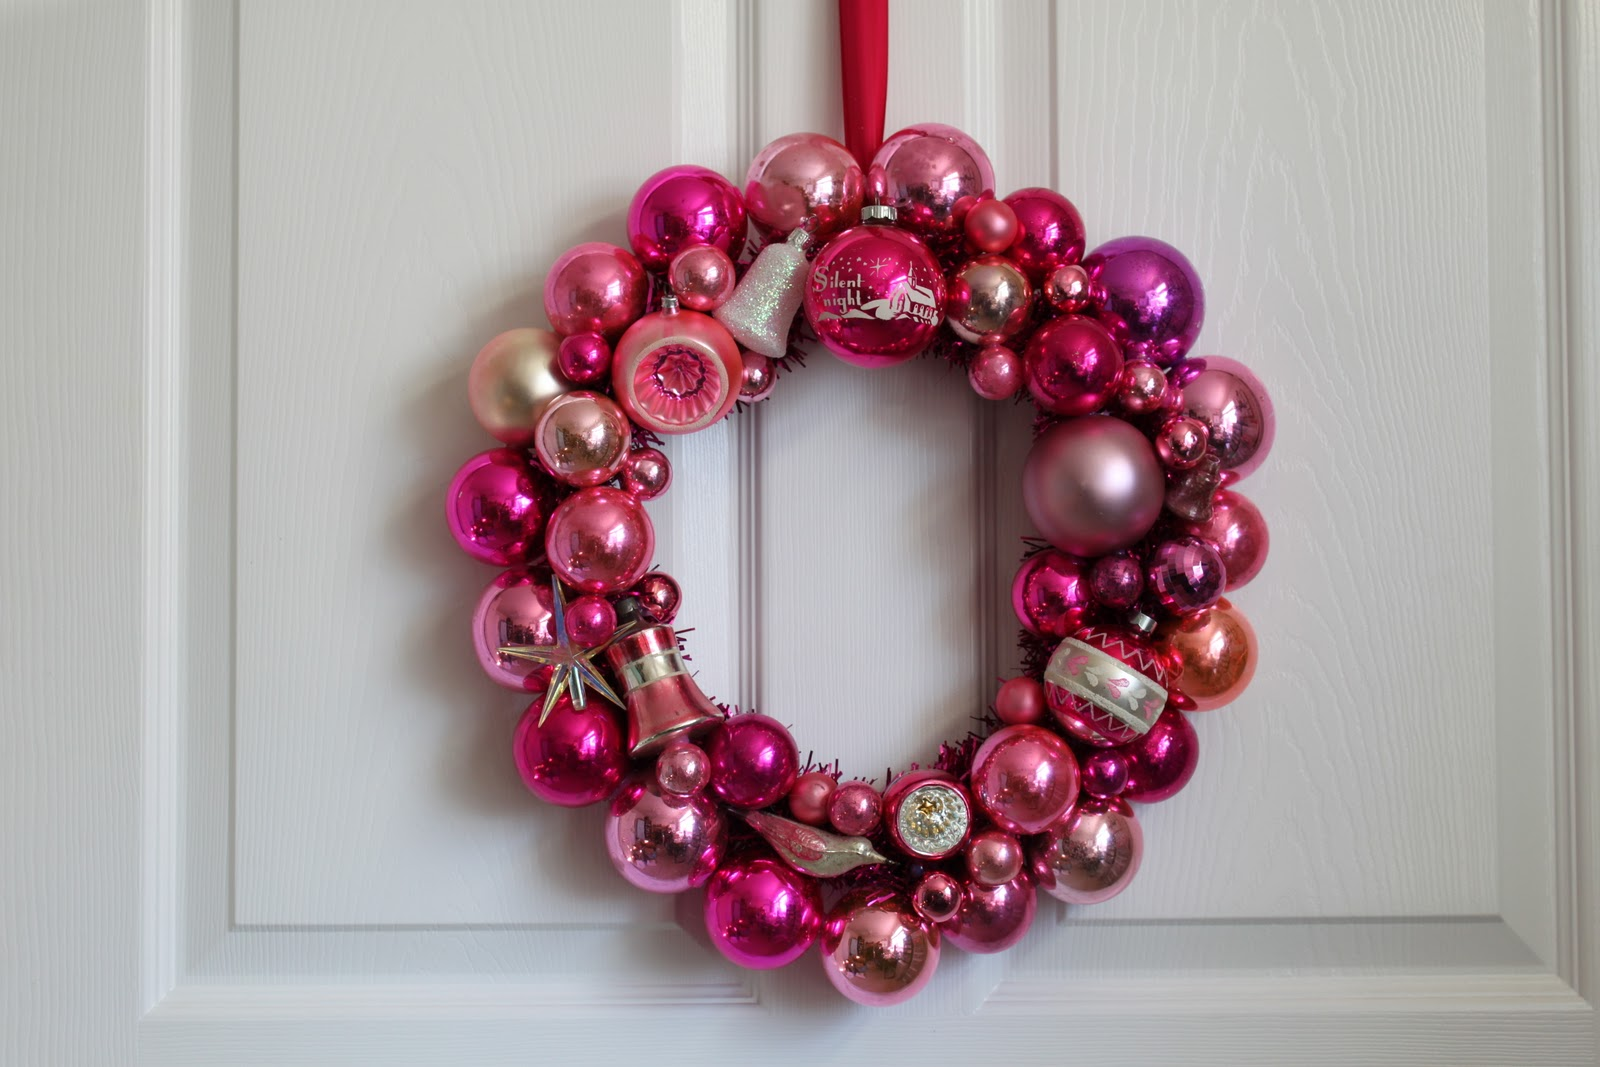 Pink baubles stuck together to make a front door Christmas wreath